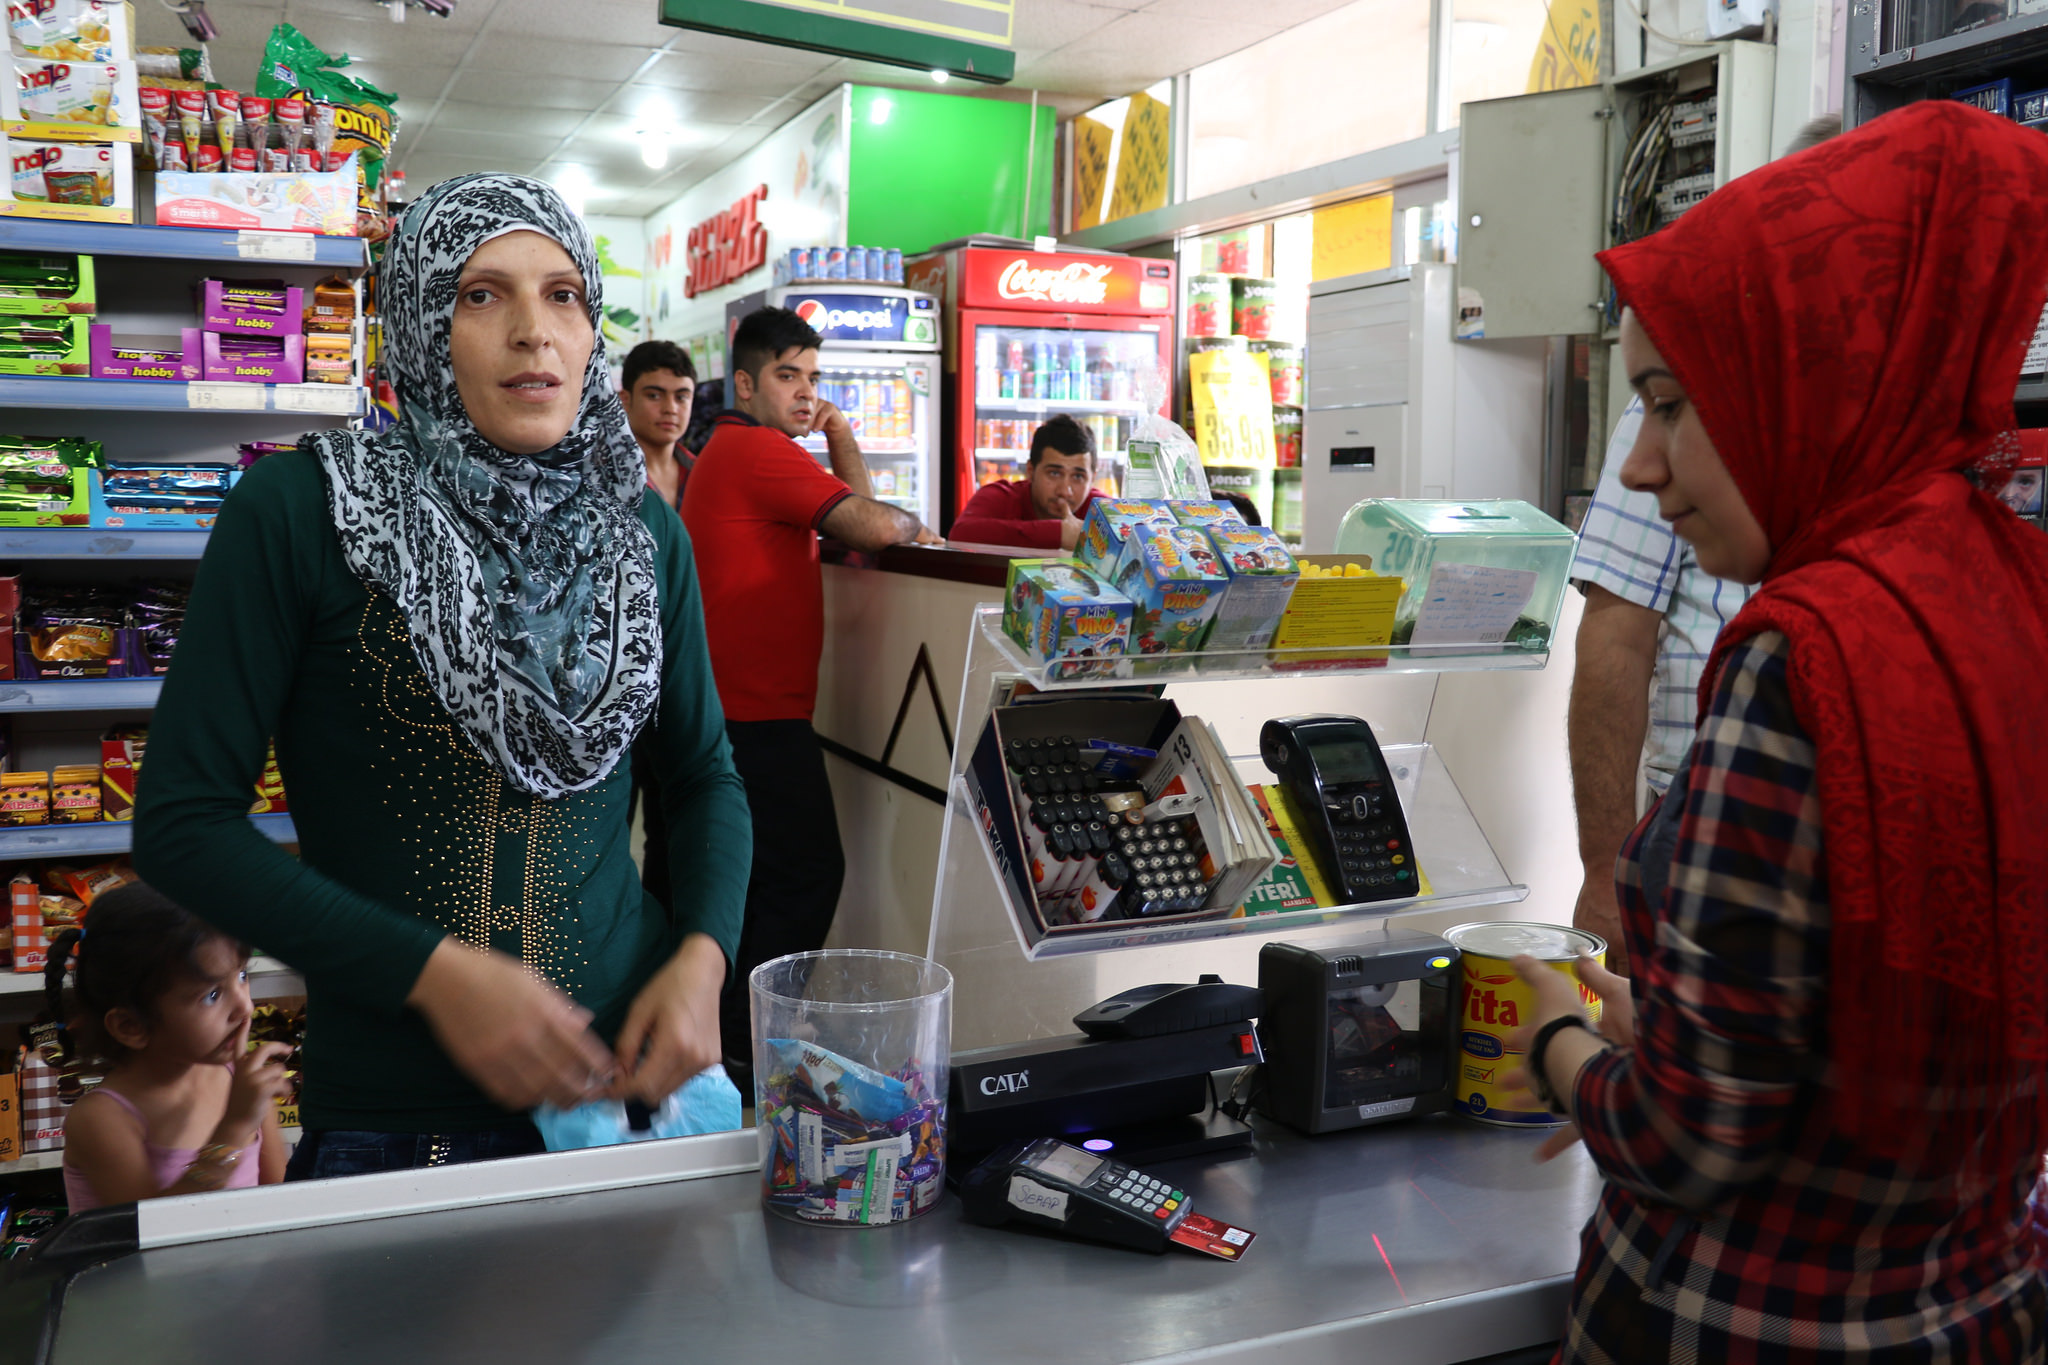 A Syrian refugee woman uses a special e-card to purchase food at a grocery store in Turkey.